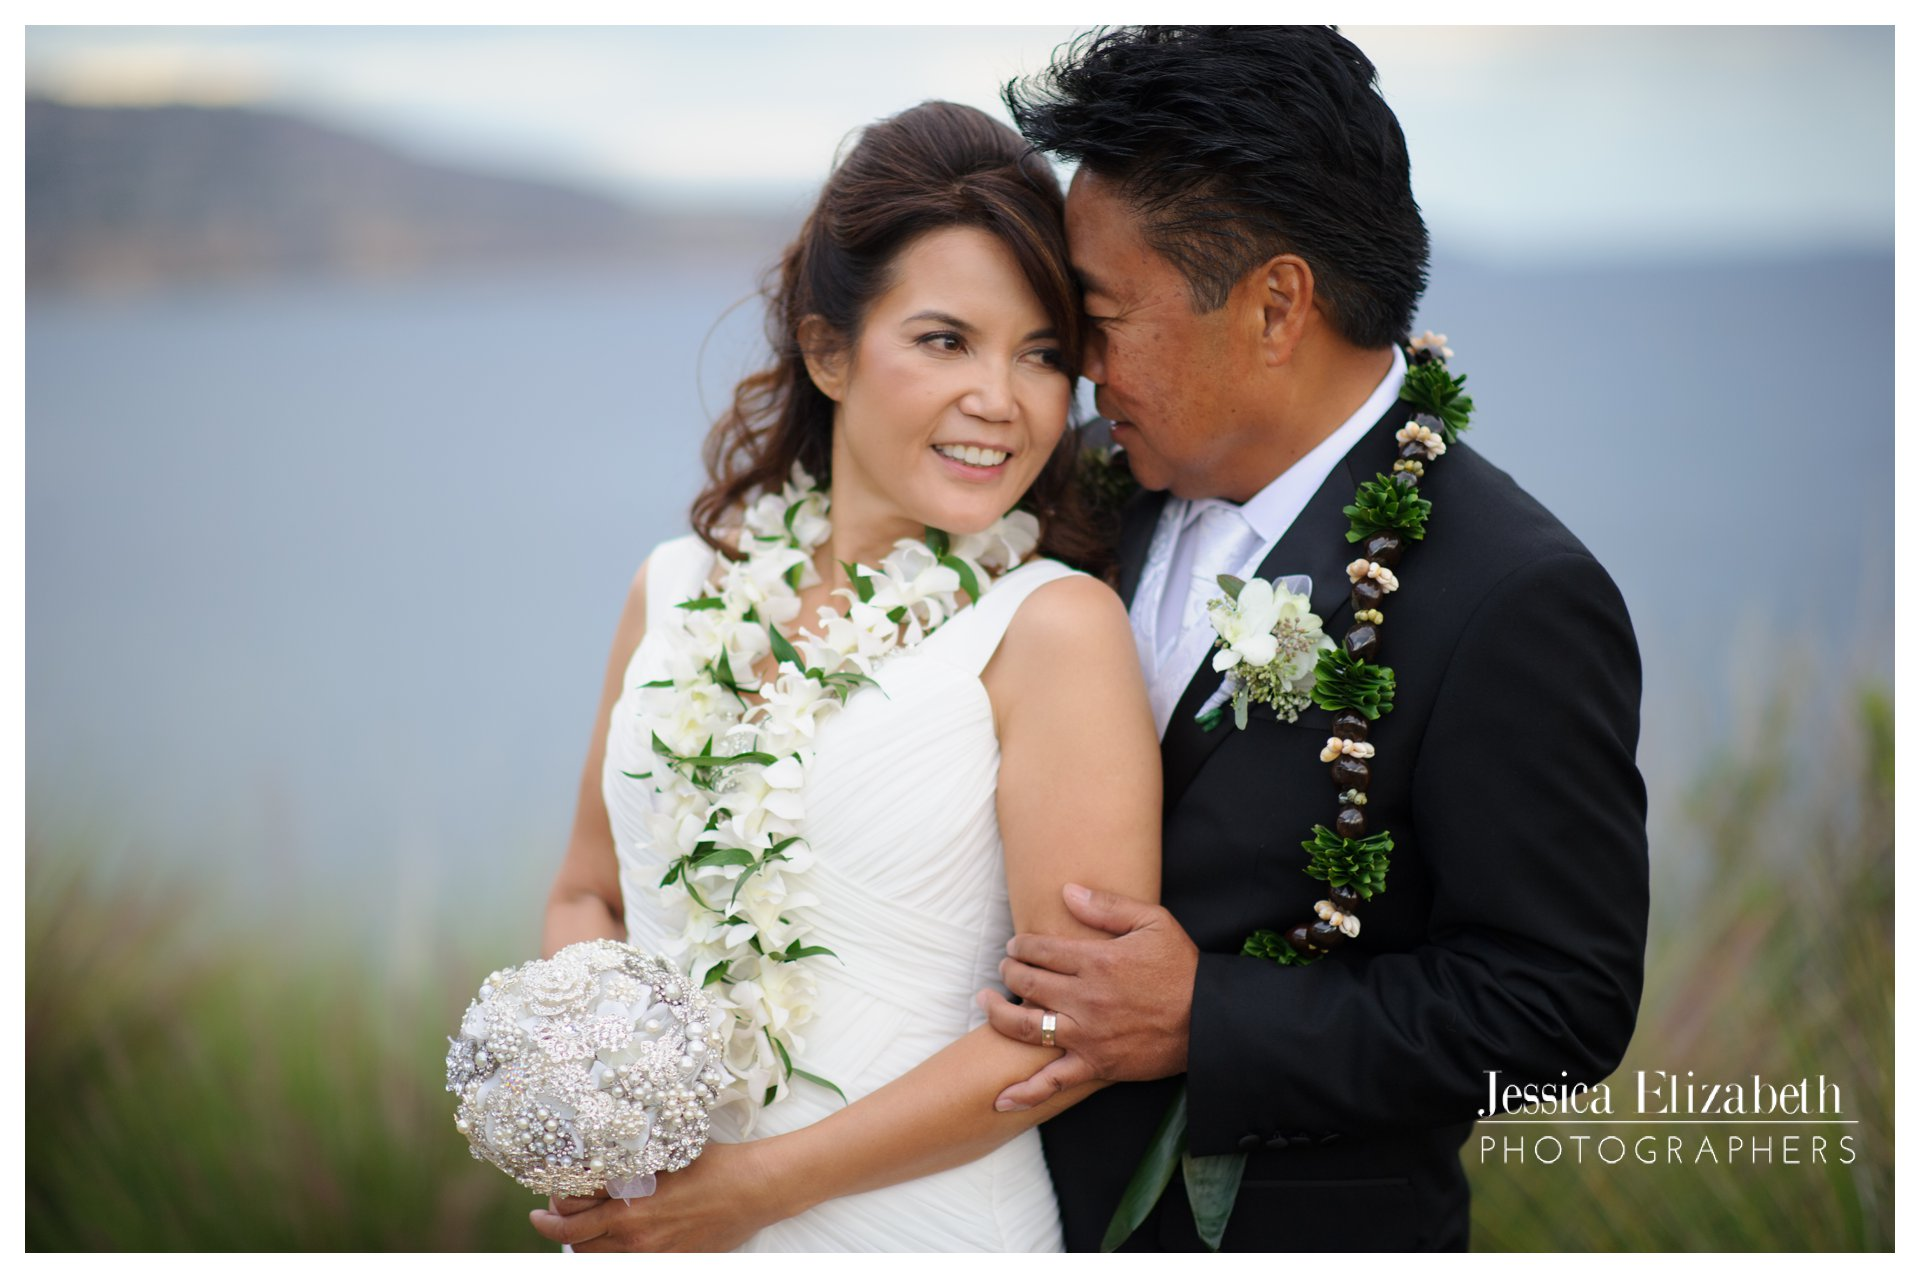 36-Terranea-Palos-Verdes-Wedding-Photography-by-Jessica-Elizabeth-w.jpg